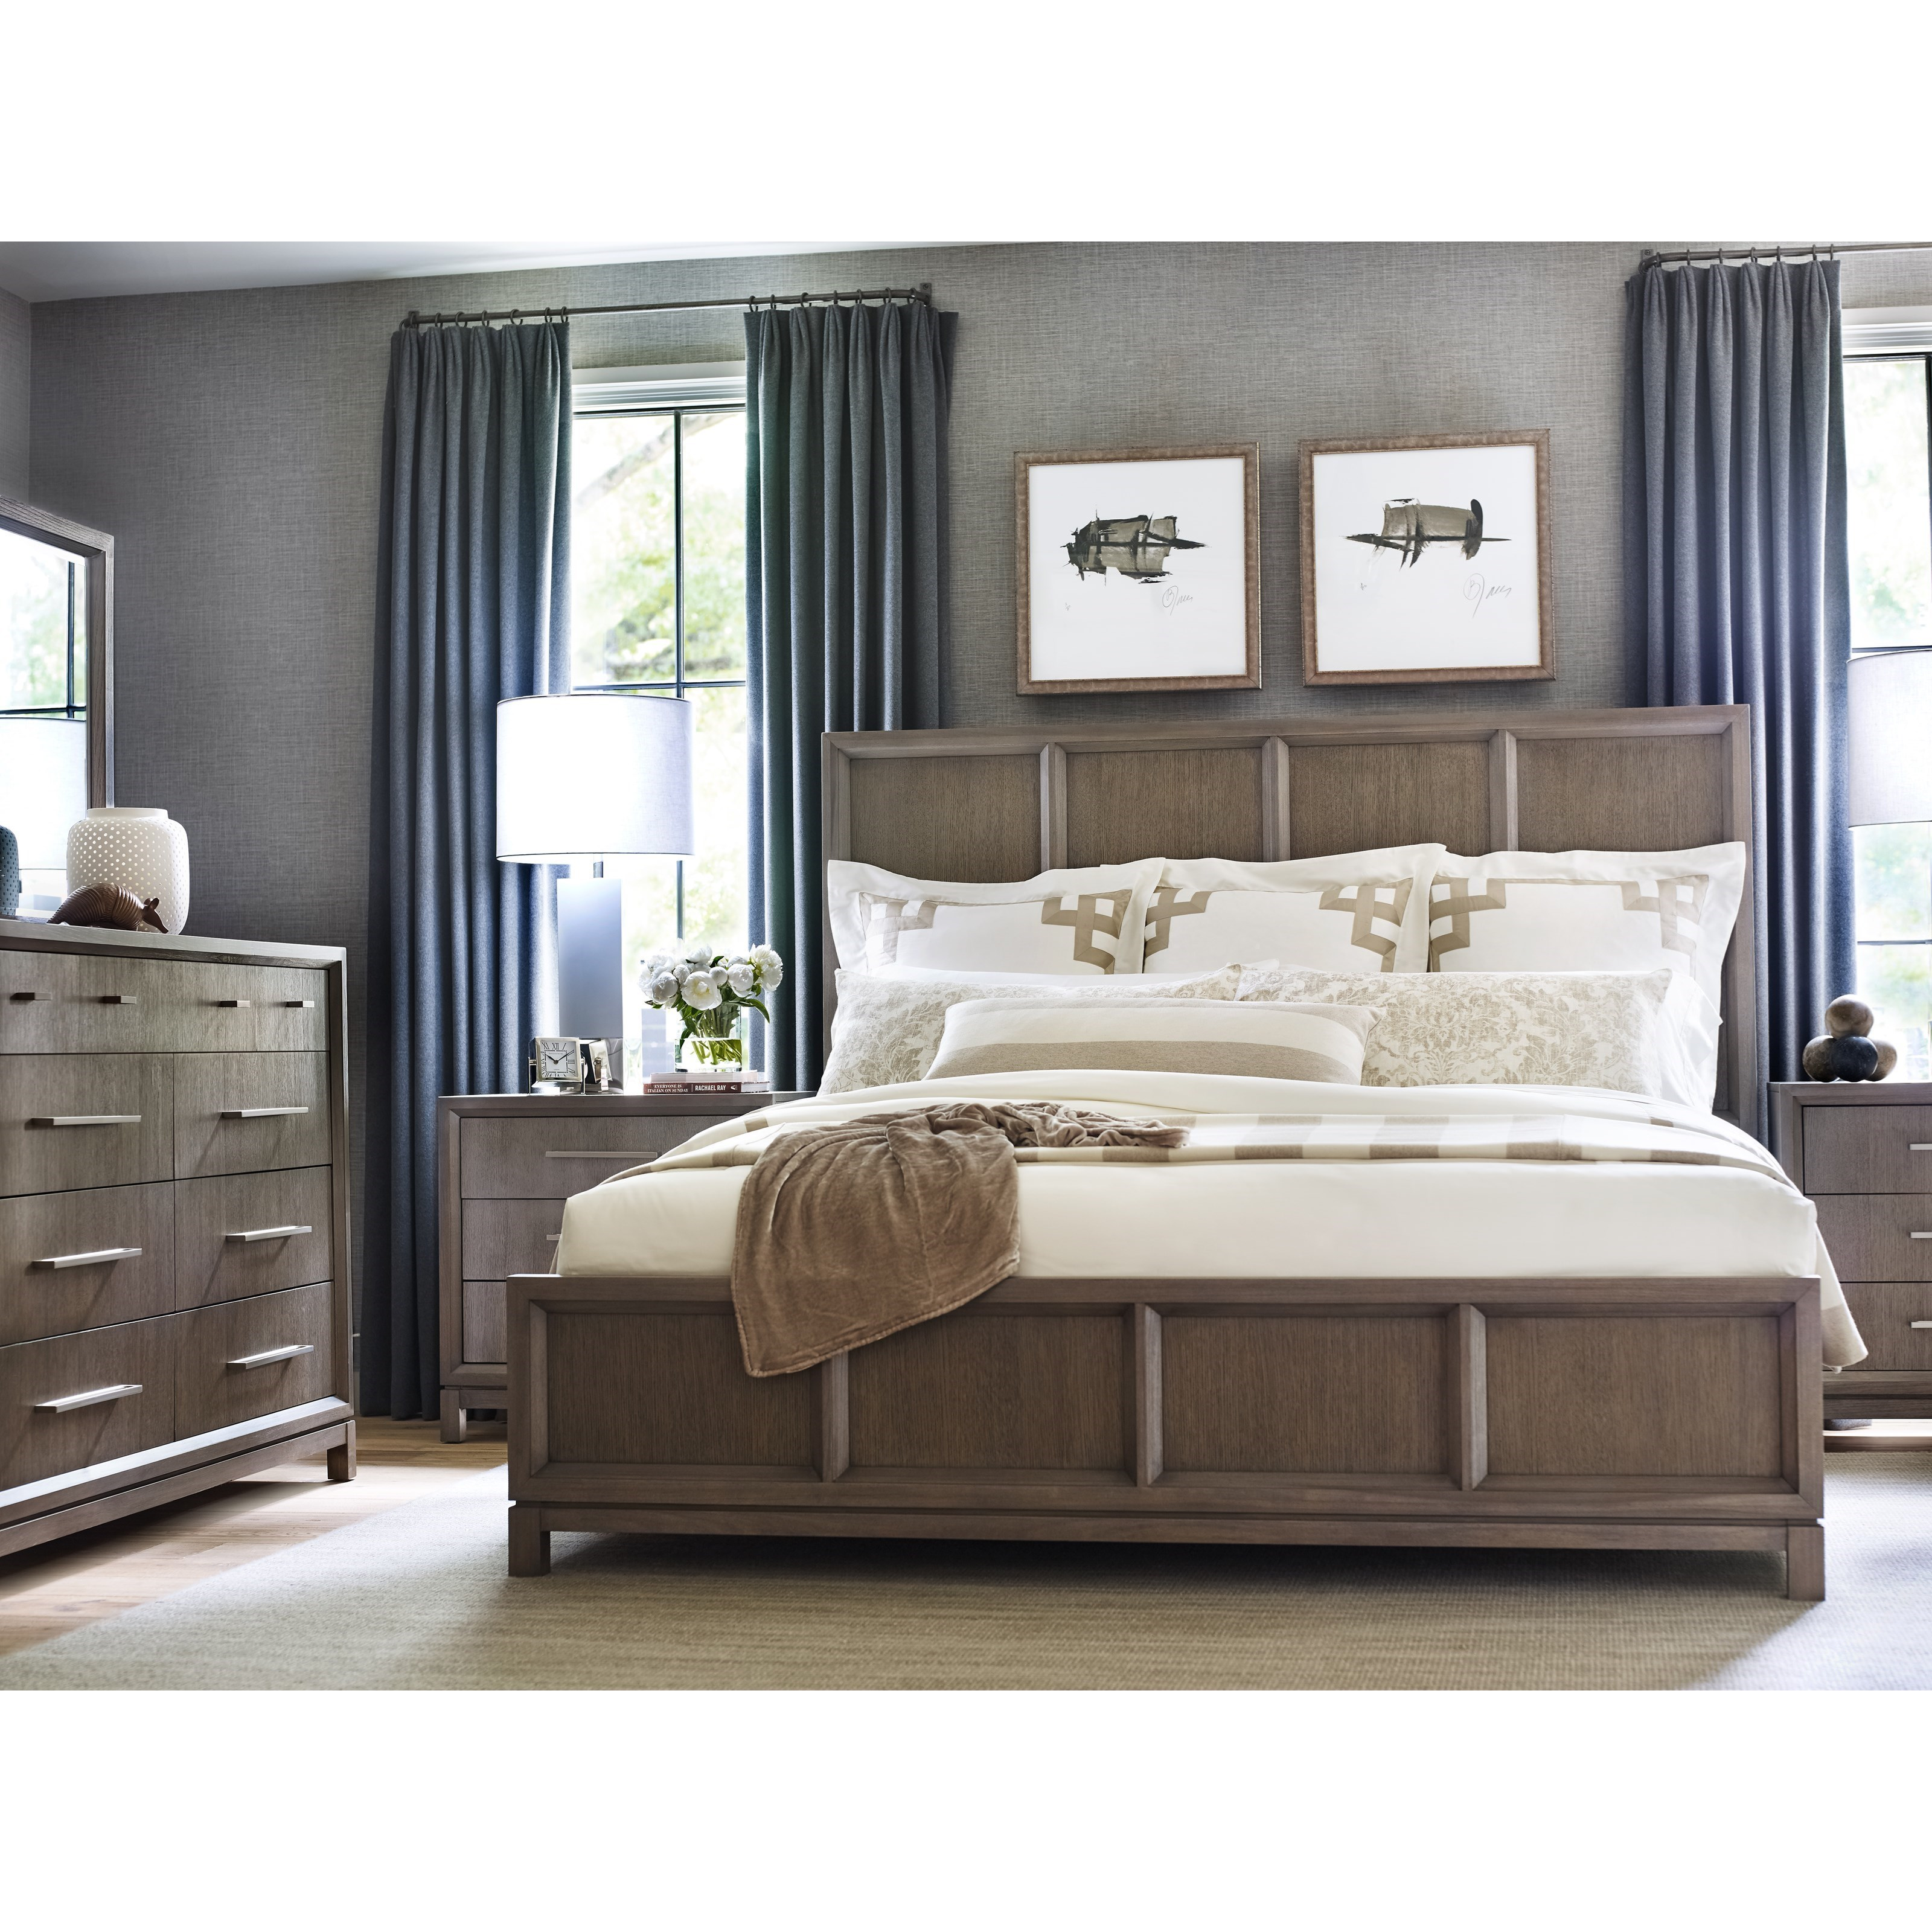 Attrayant Rachael Ray Home High Line Queen Bedroom Group   Fashion Furniture    Bedroom Groups Fresno,